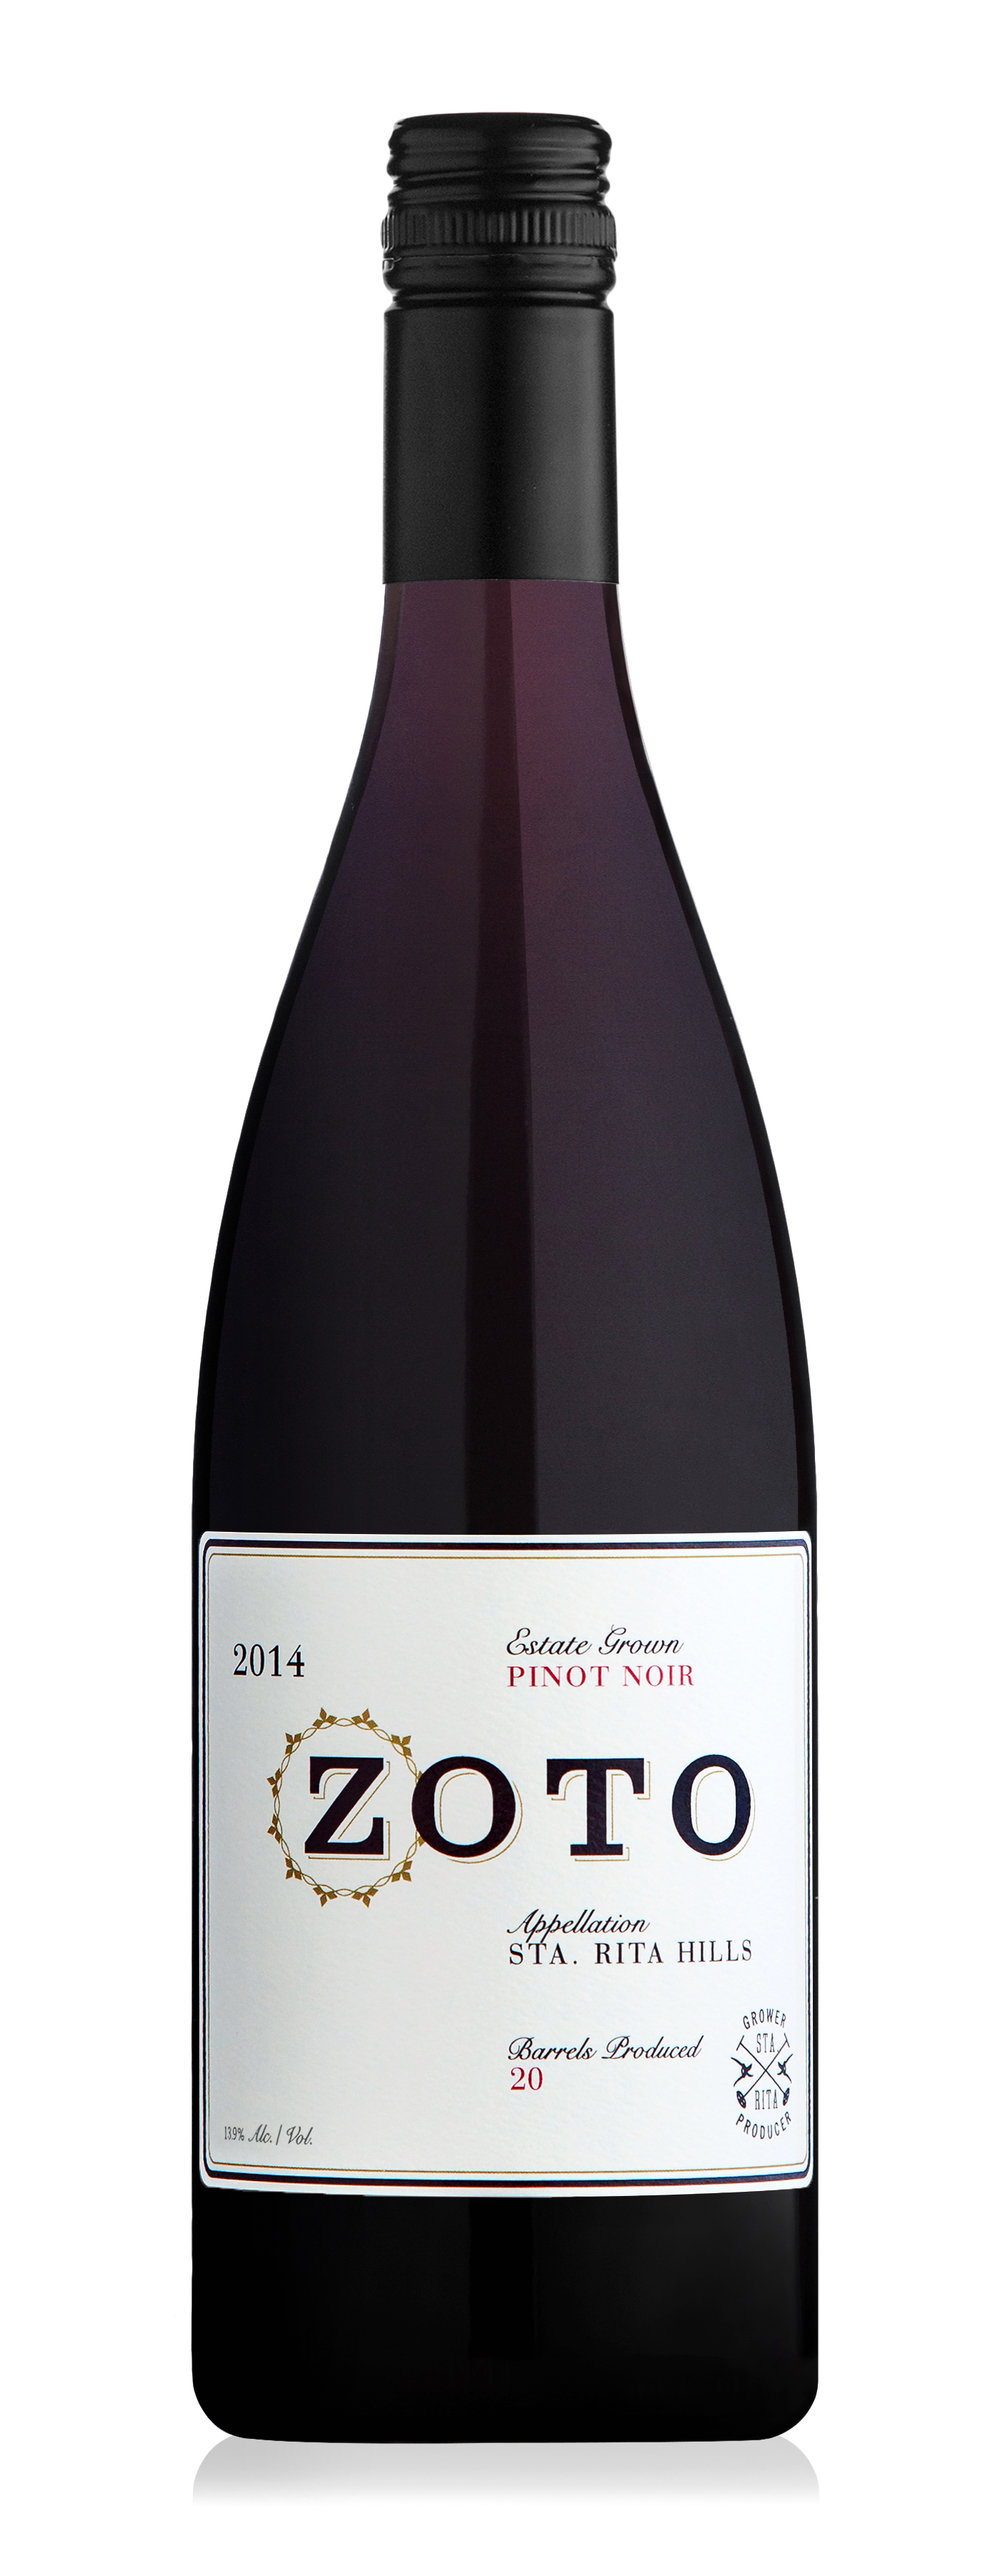 Zotovich.ZOTO.2014.Estate.PN.Bottle.Shot.High.Res.300dpi.Bottle.Branding.jpg